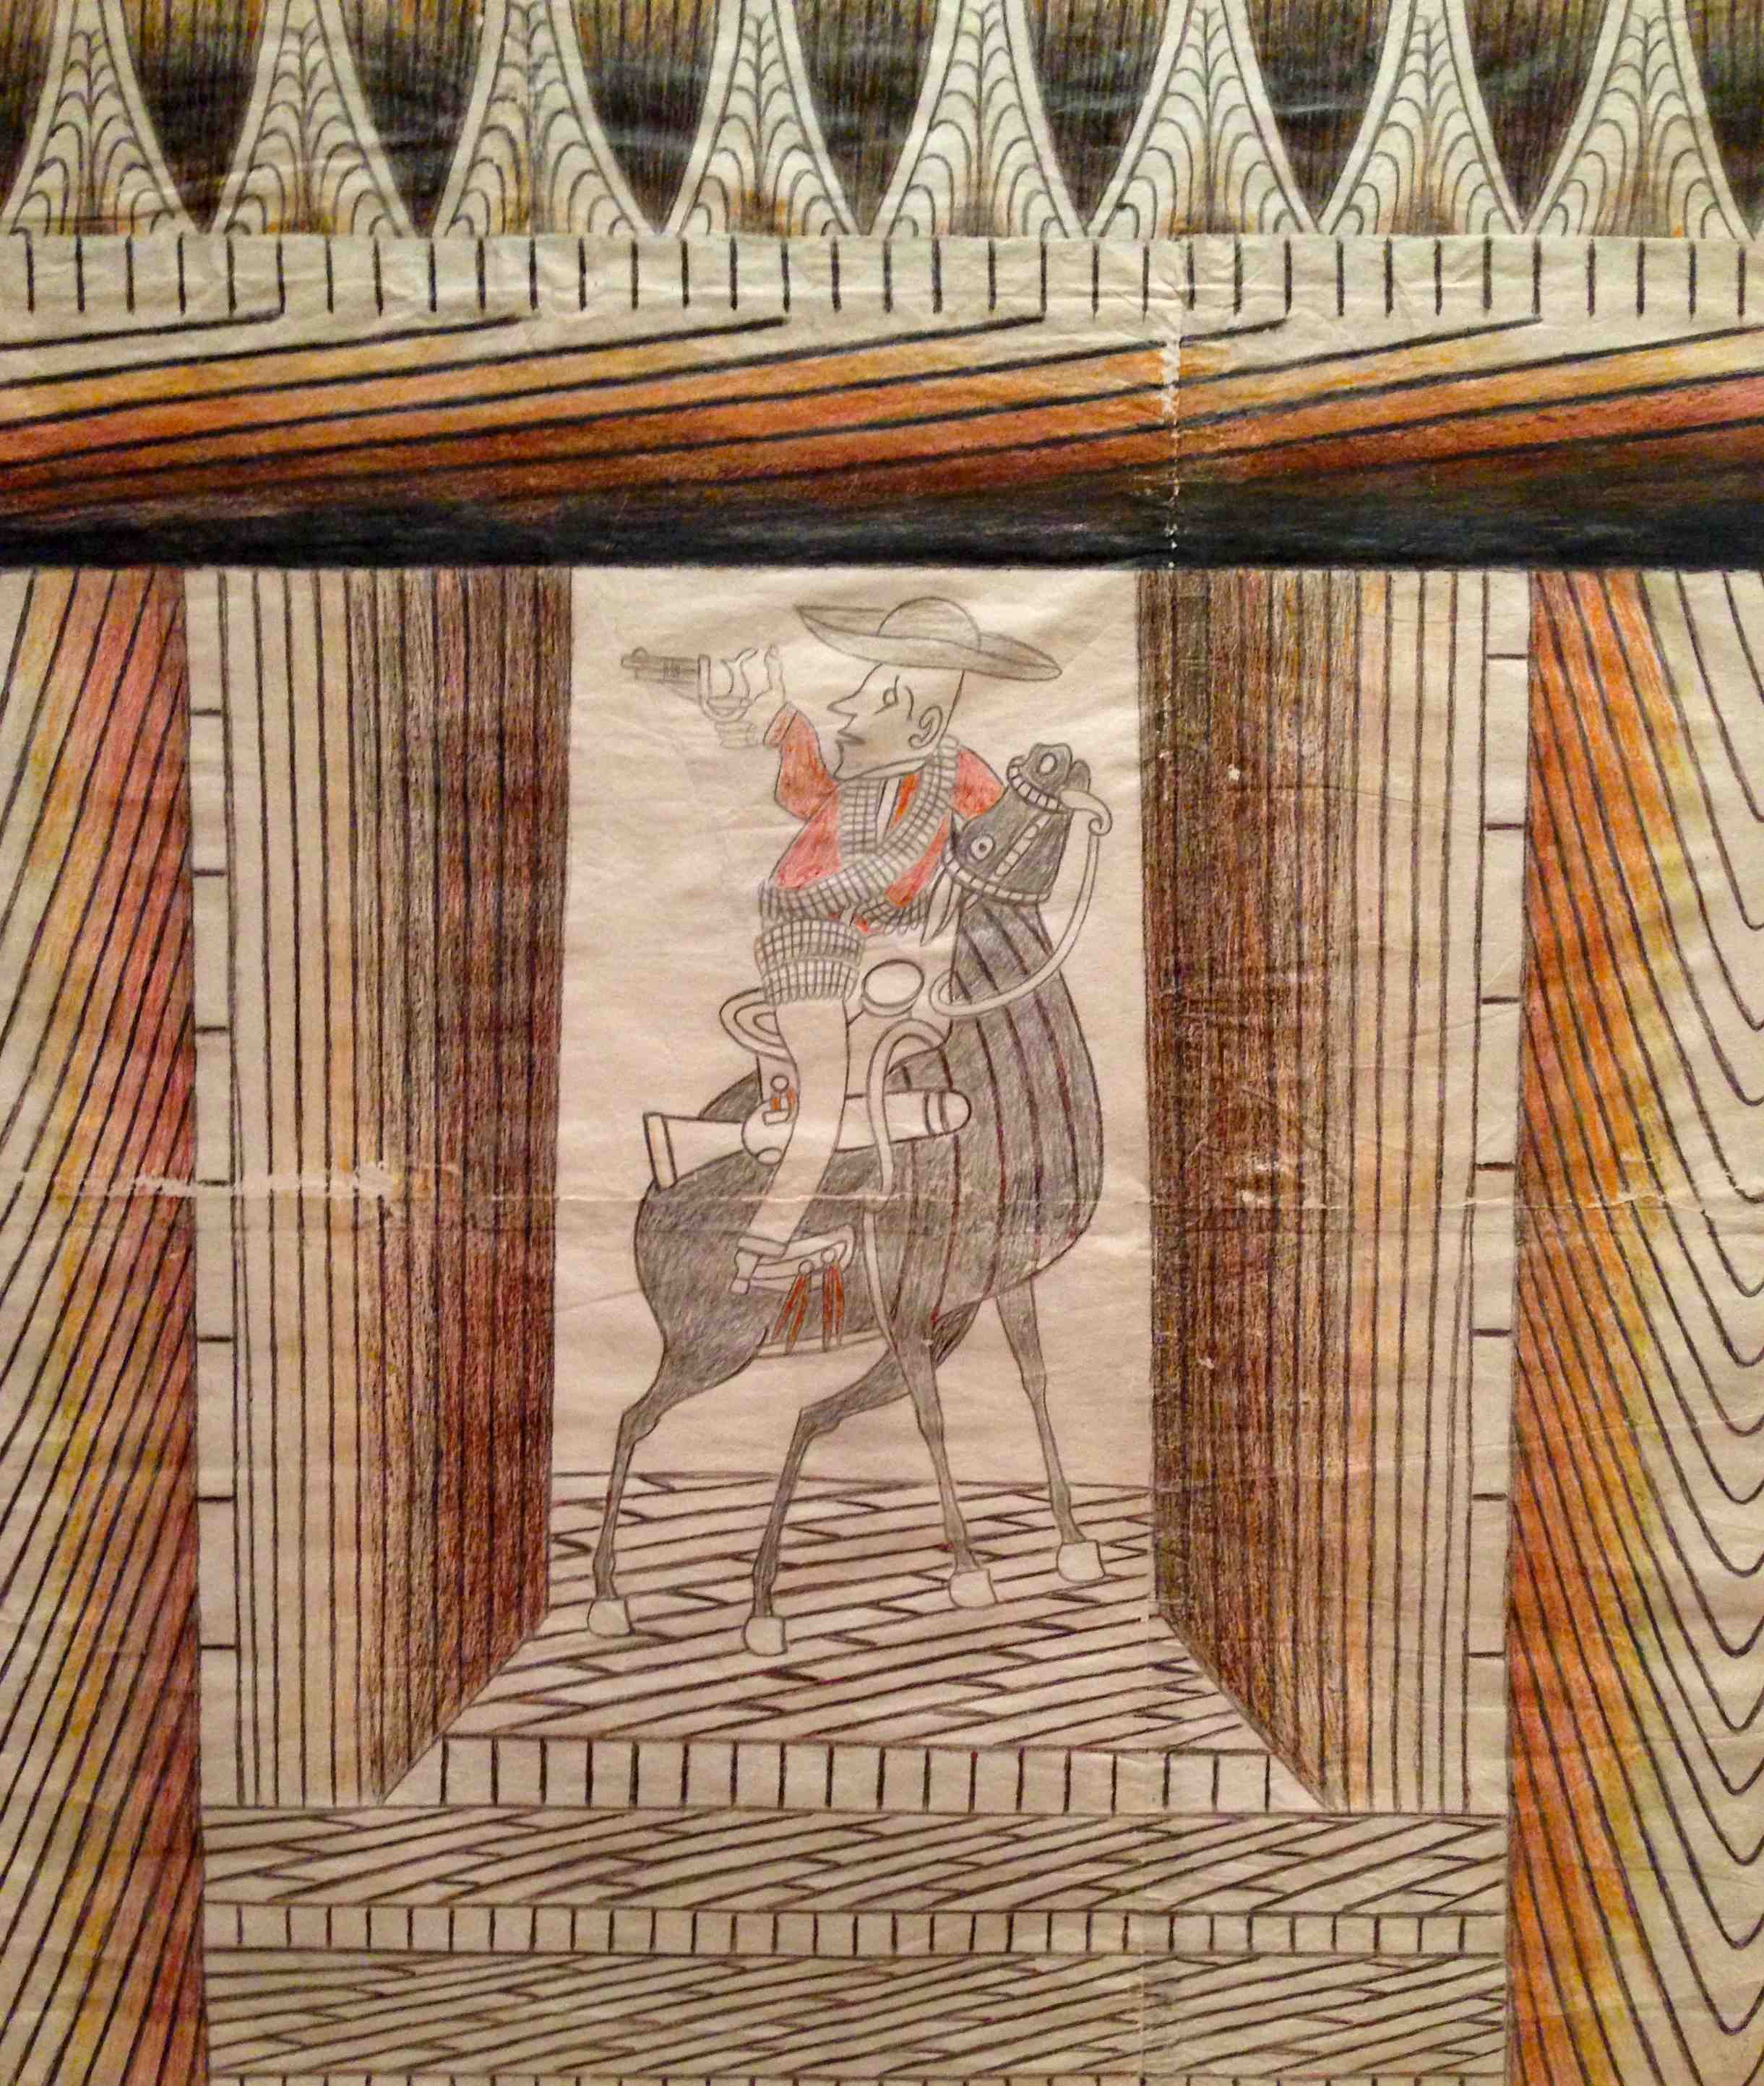 Martin Ramirez, Horse and Rider, Detail. Wax crayon, graphite, and unidentified artist-made black inks on pieced papers, 42 1/2 x 34 3/4 inches. (Photo by Michelle Aldredge from The Jill and Sheldon Bonovitz Collection at the Philadelphia Museum of Art)